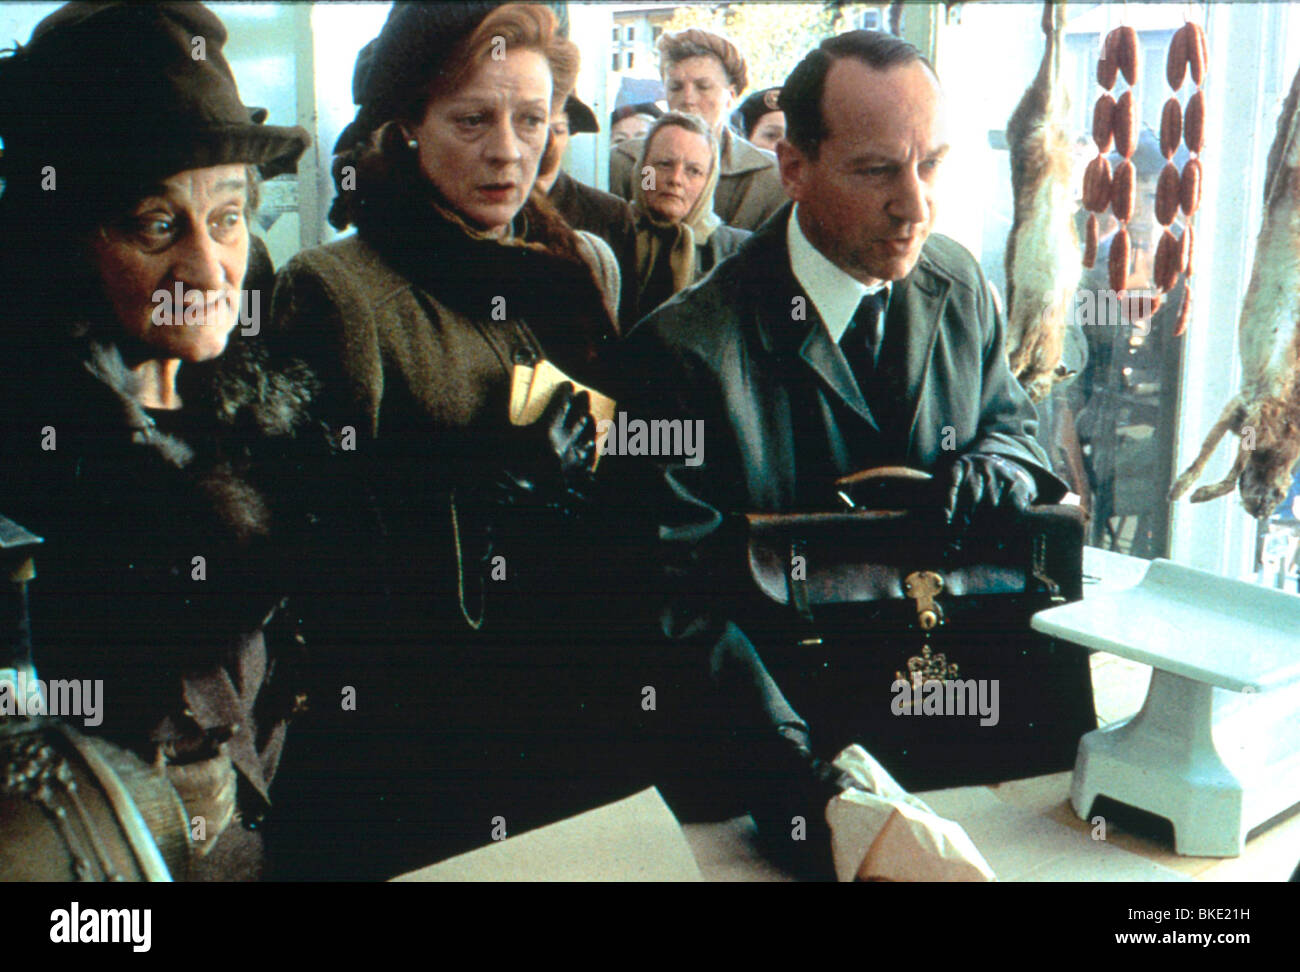 A PRIVATE FUNCTION (1984) LIZ SMITH, MAGGIE SMITH, BILL PATERSON PVF 041 - Stock Image